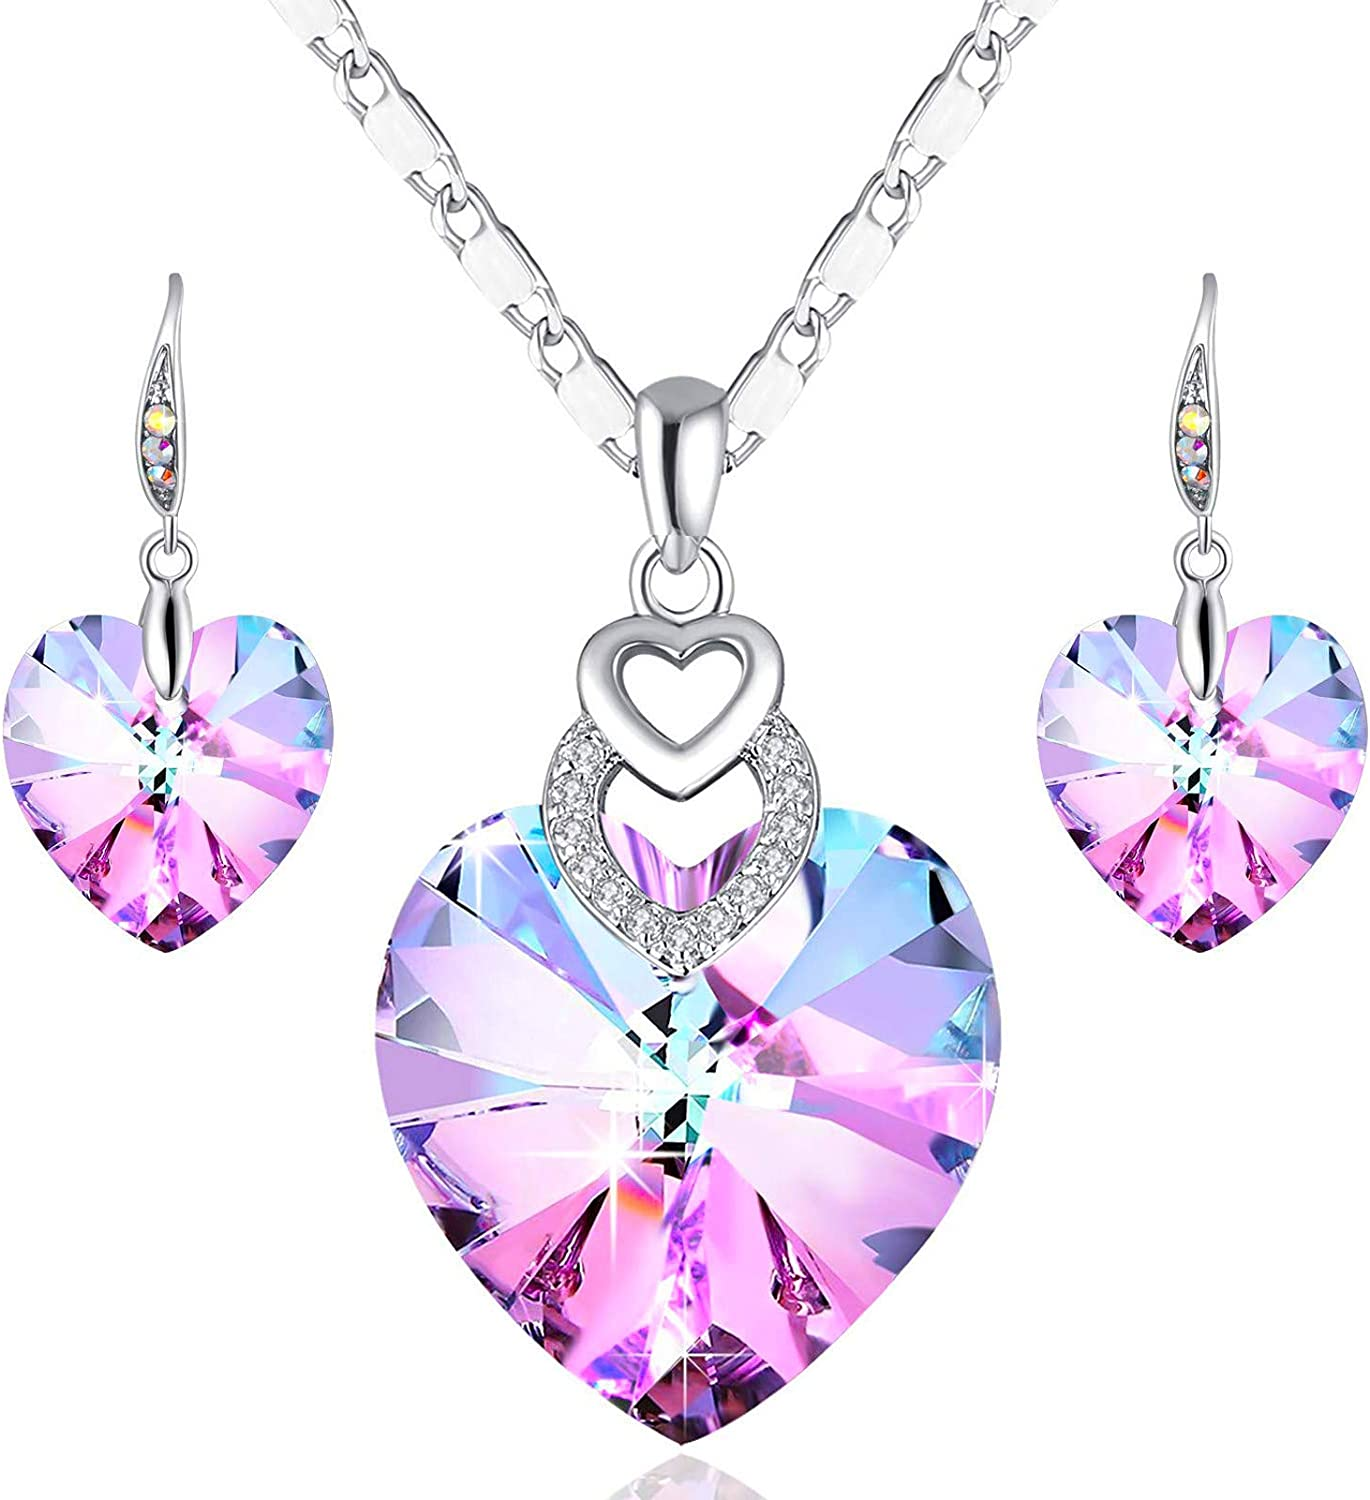 PLATO H 3 Heart Jewelry Set Crystals Christmas Gift for for Women Girls Pendant with Elegant Box Anniversary Mothers Day Gifts for her